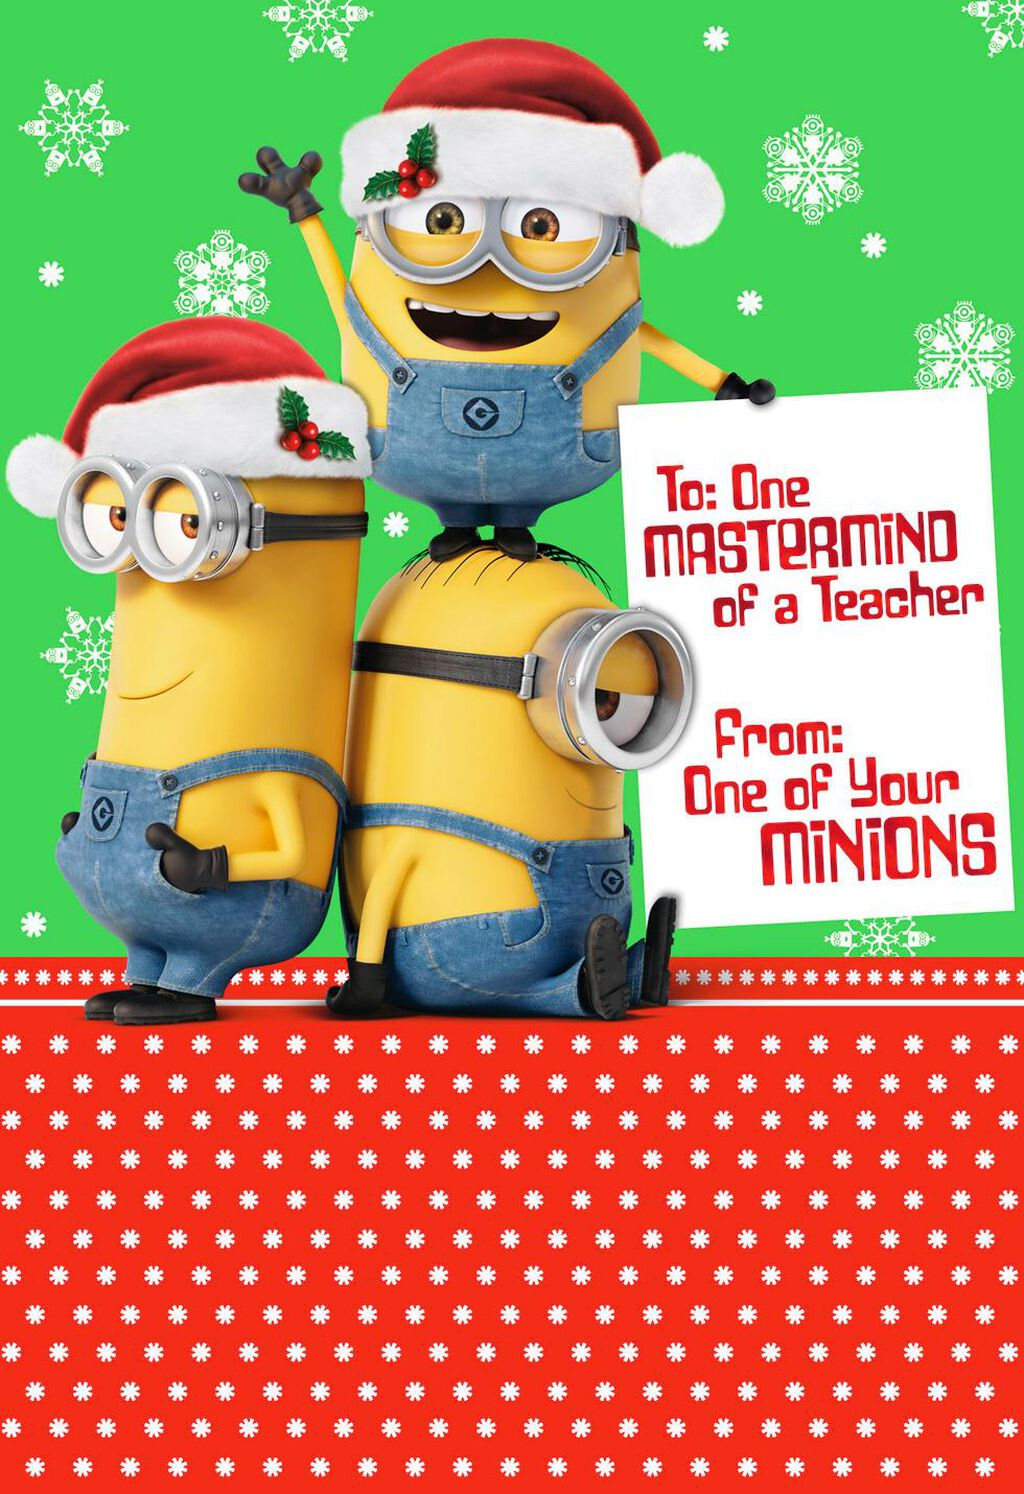 cf59f395573b5 Despicable Me Minions Mastermind Christmas Card for Teacher - Greeting Cards  - Hallmark